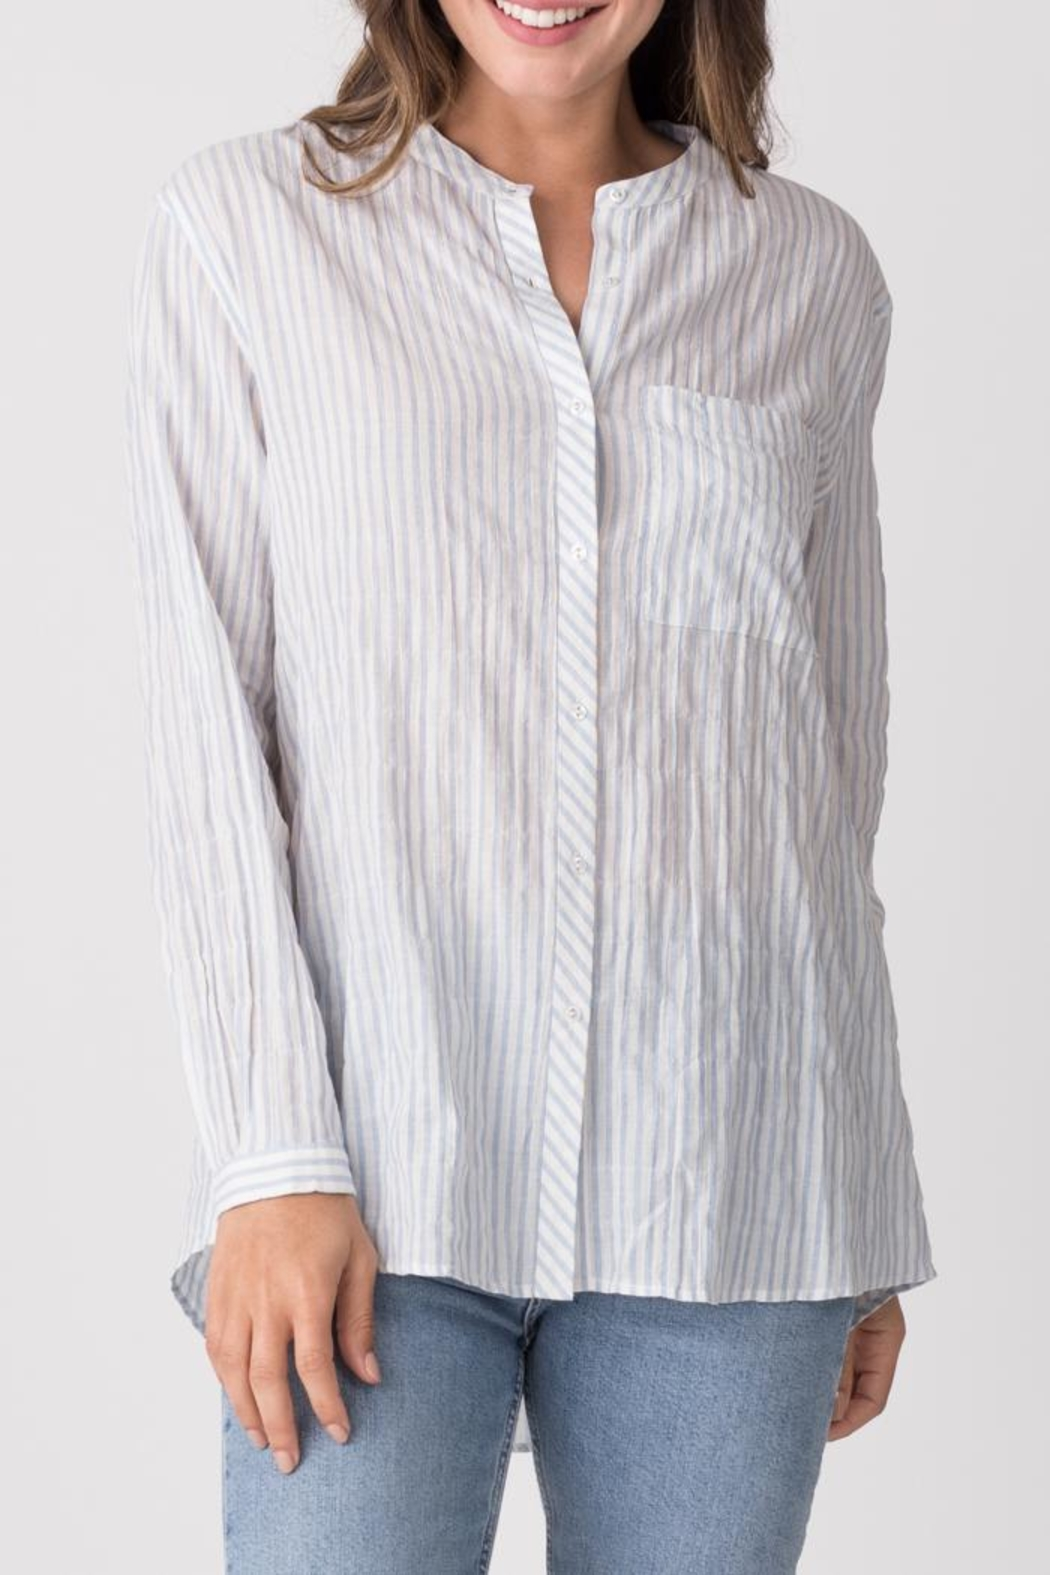 Margaret O'Leary Relaxed Striped Shirt - Main Image